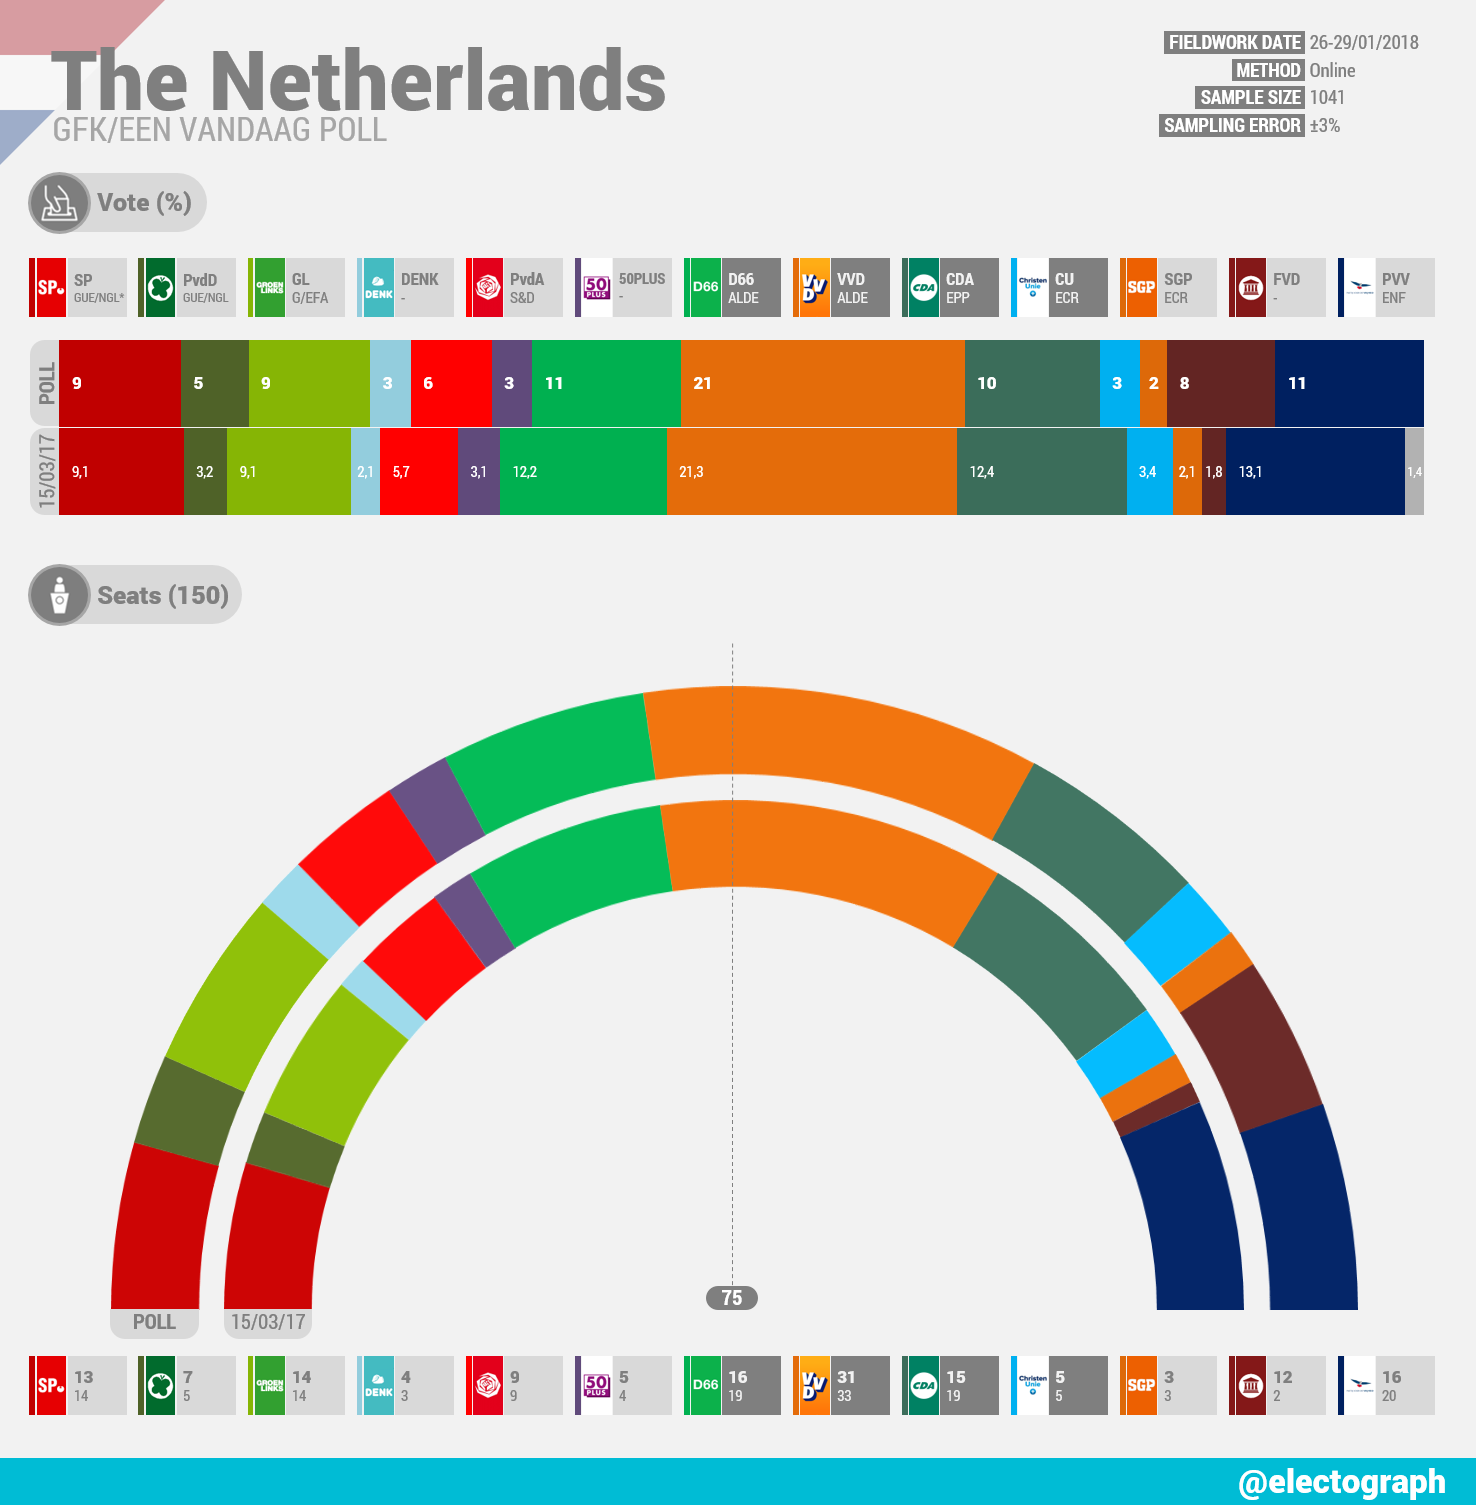 THE NETHERLANDS GfK poll chart for EenVandaag, January 2018